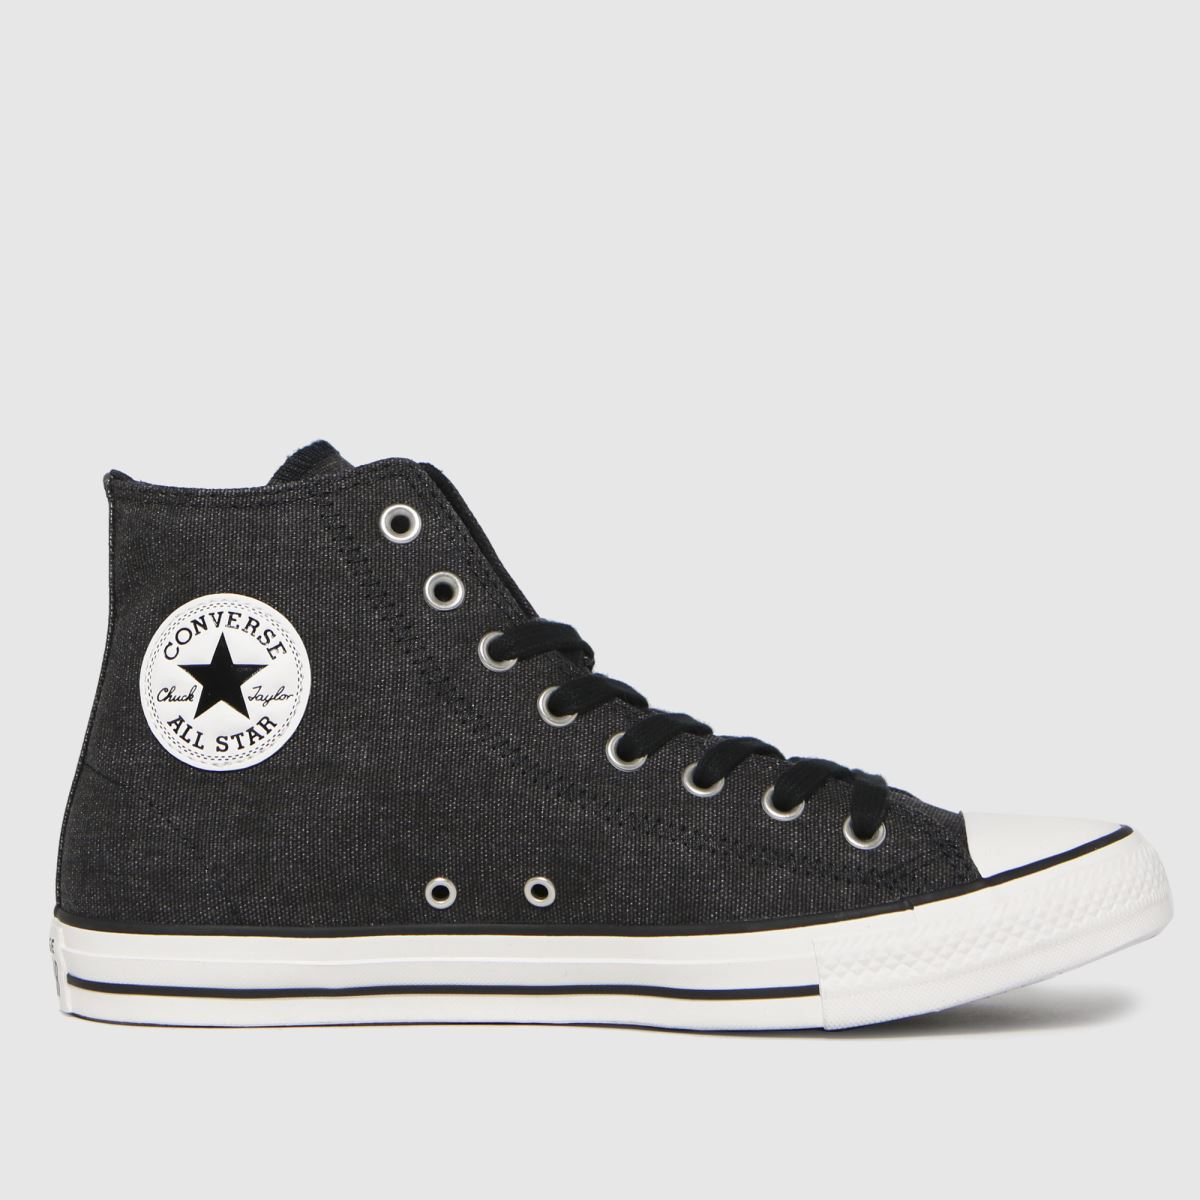 Converse Black Washed Textile Hi Trainers